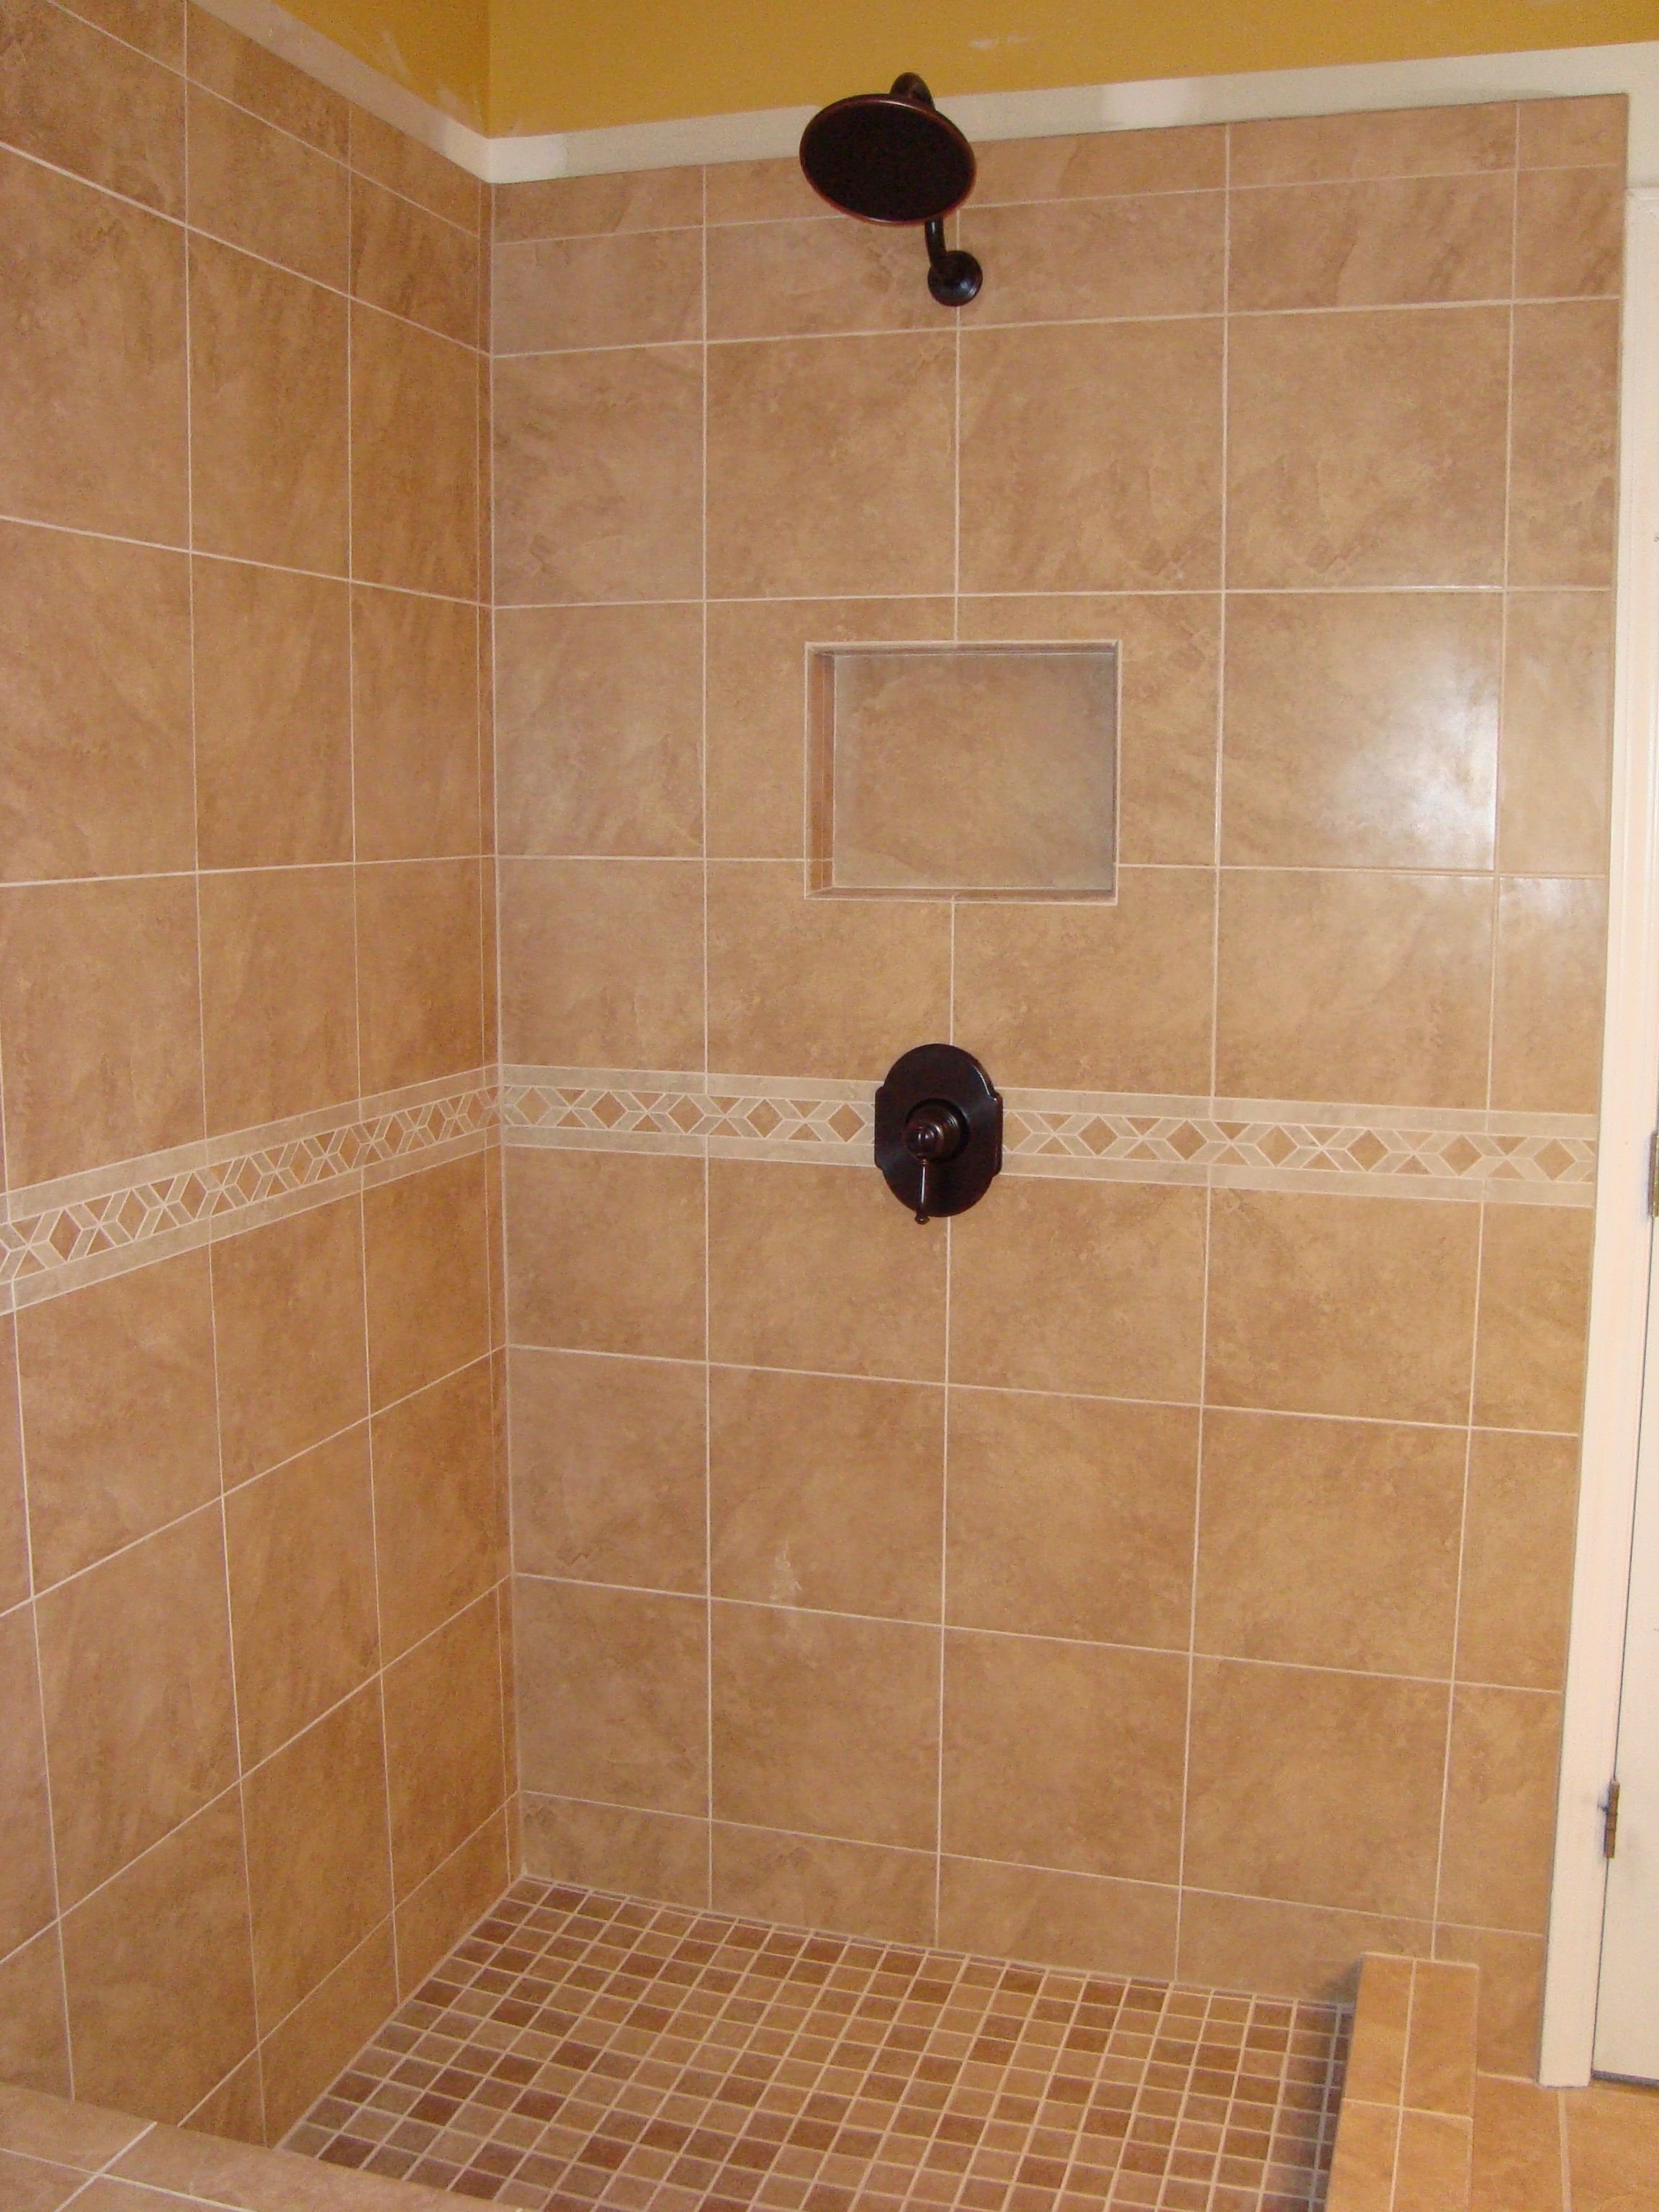 ChemE Construction Inc. - Bathroom Remodel